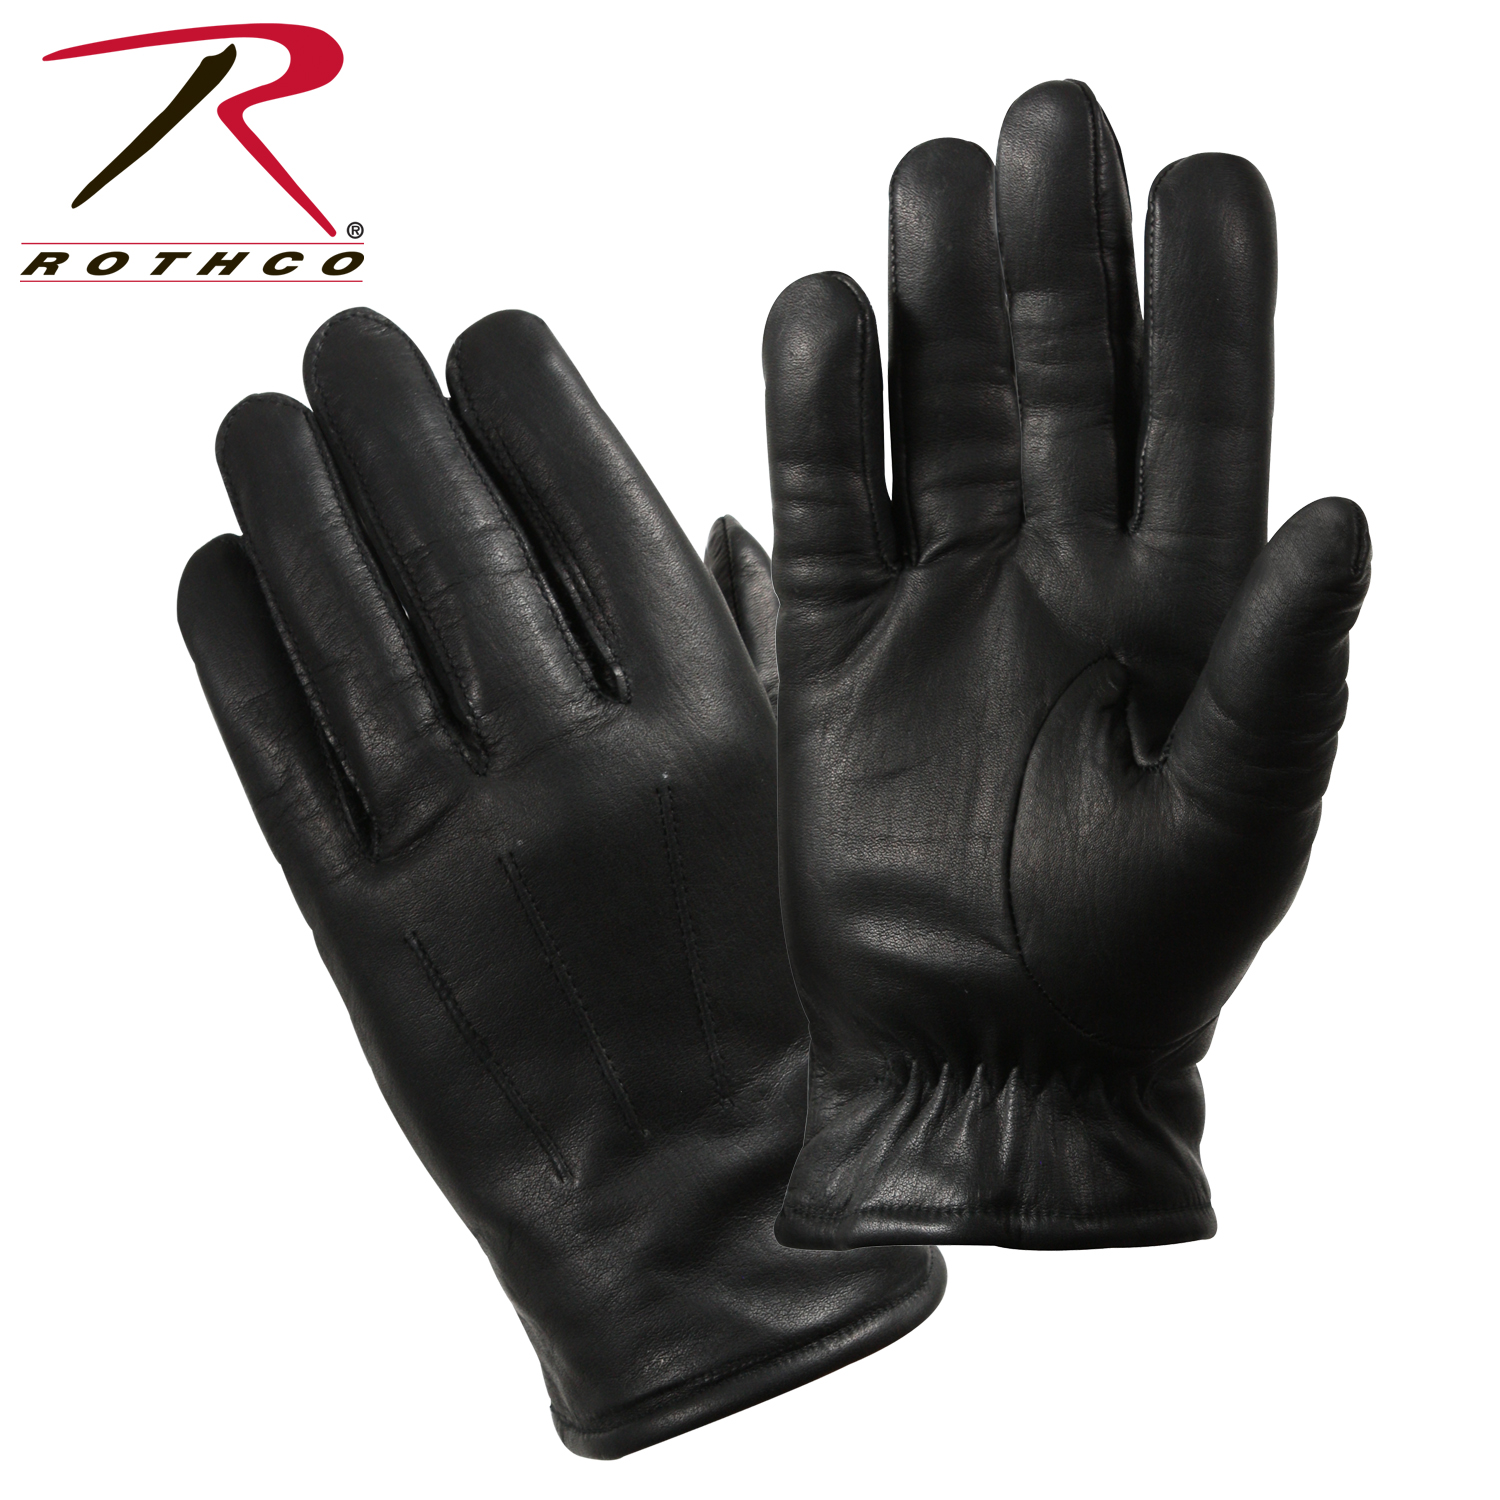 Rothco Cold Weather Leather Police Gloves Glove Loading Zoom